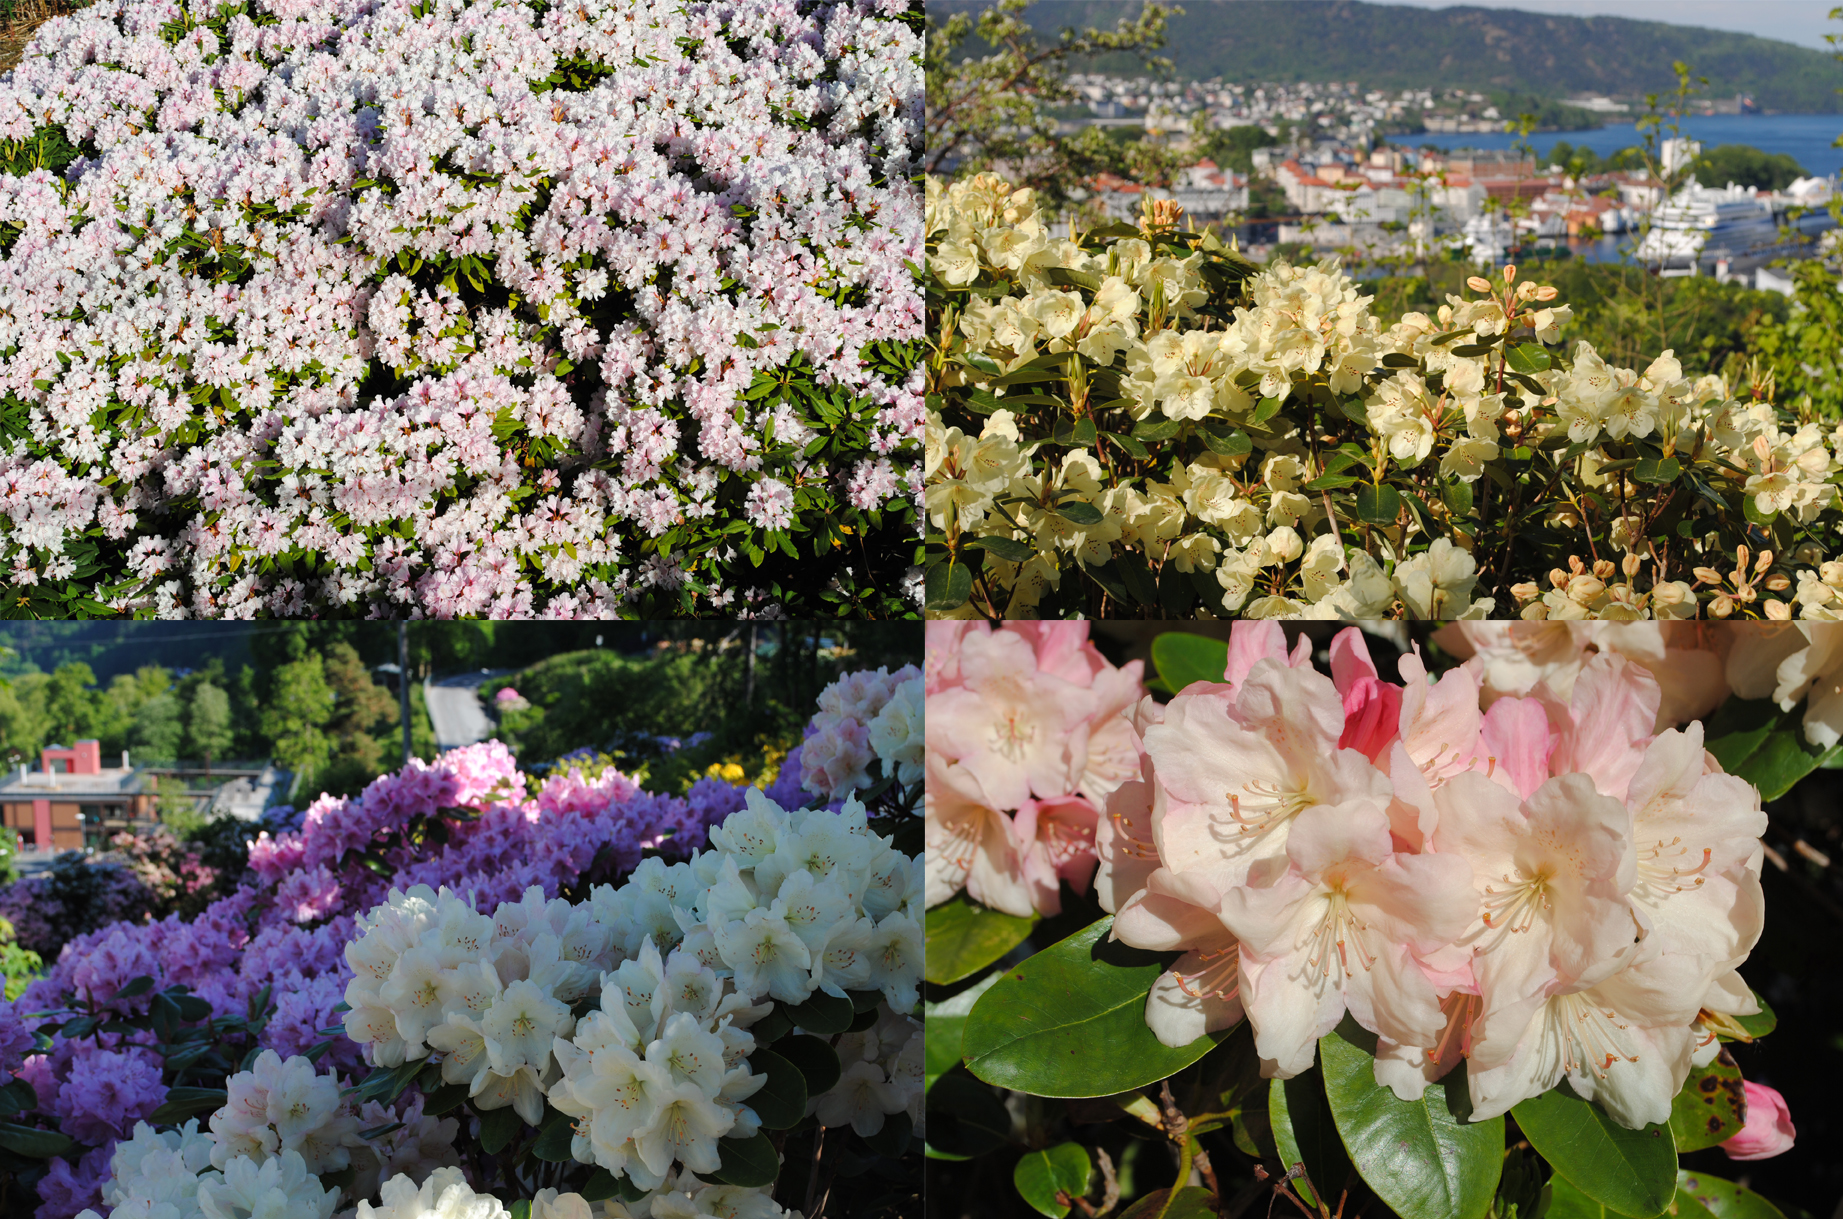 Rhododendrons in Bergen  2013 (photo: Mathew Reeve)